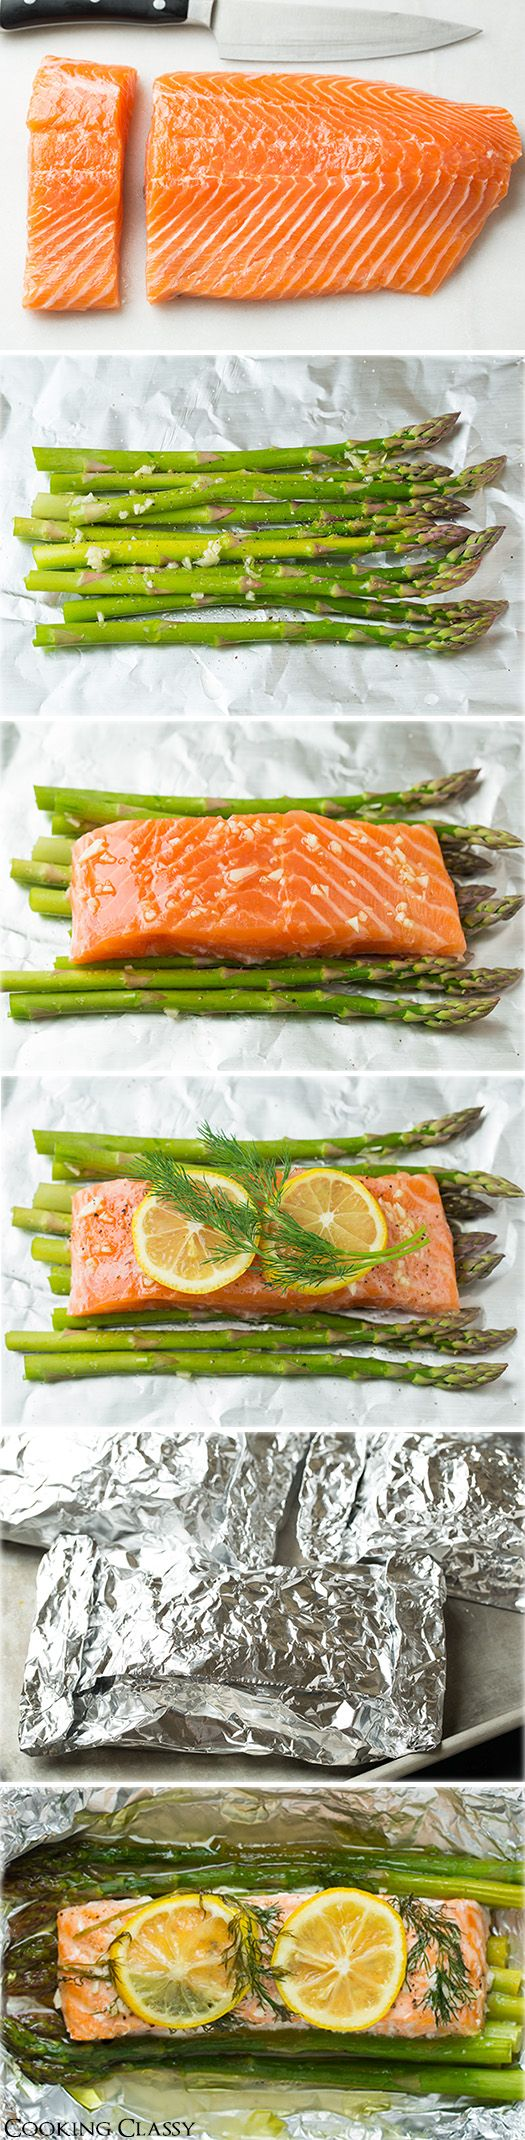 Baked Salmon and Asparagus in Foil - this is one of the easiest dinners ever, it tastes amazing, it's perfectly healthy and clean up is a breeze! CookingClassy.com #fish #seafood #dinner